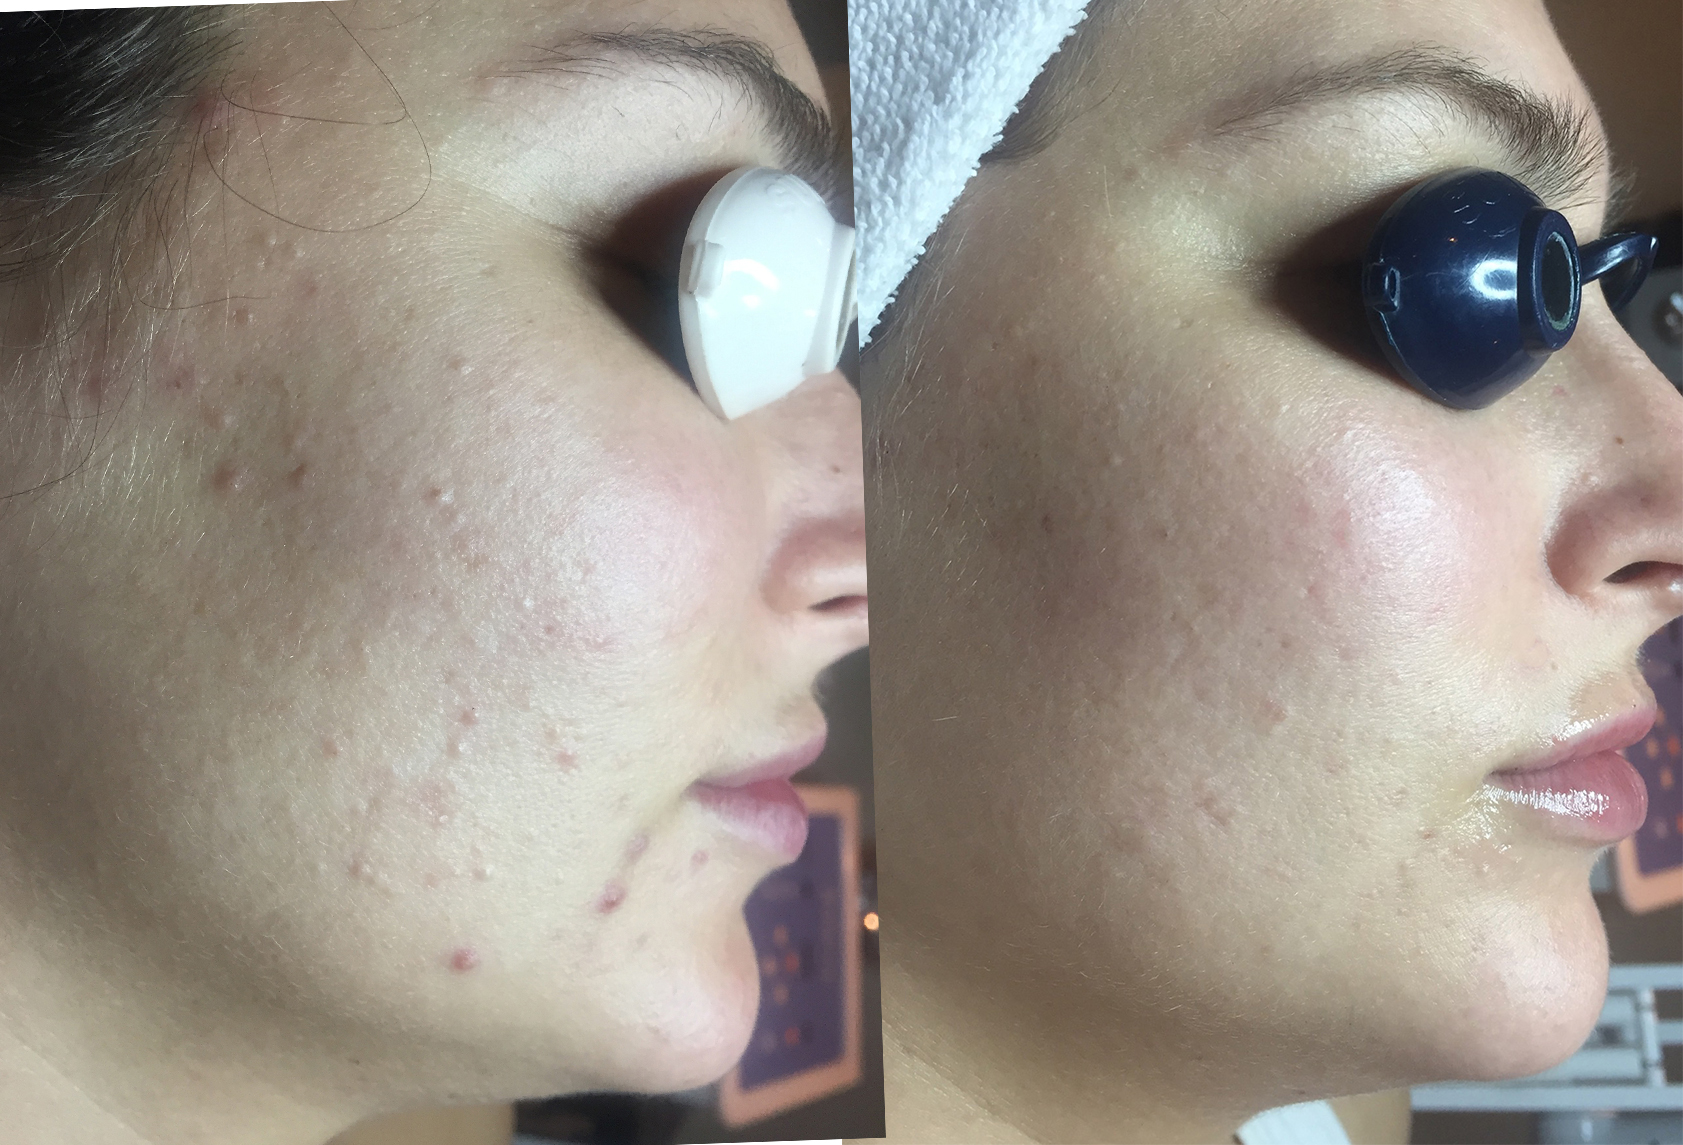 Results obtained with 2 Level 2 Peels